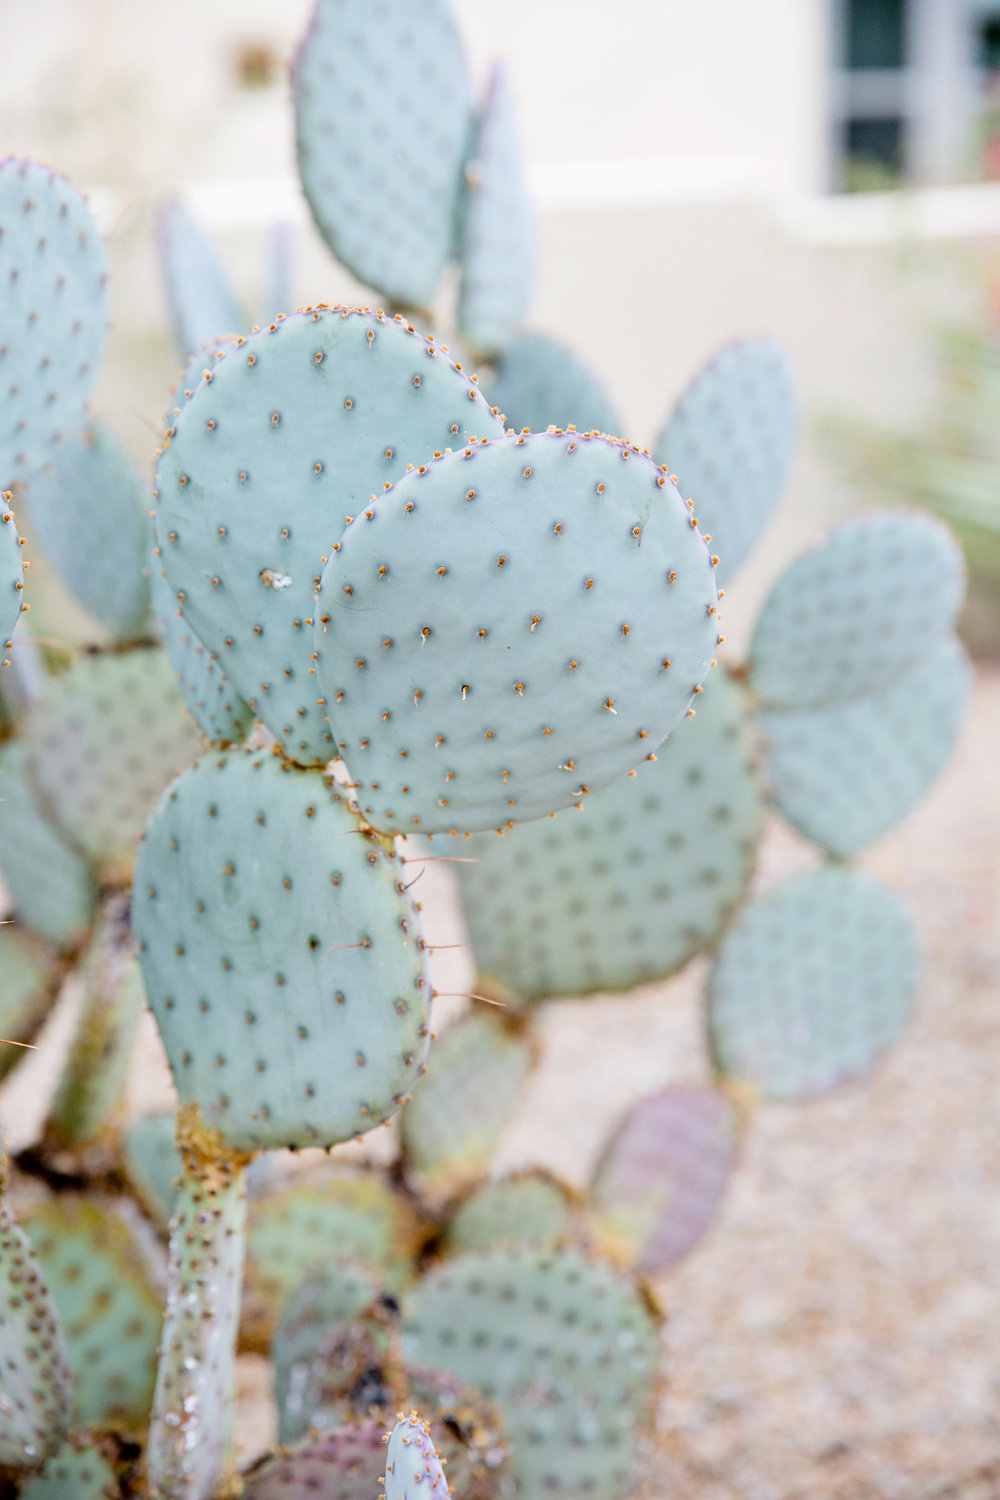 Arizona wedding, Camelback Mountain wedding, pink flowers, wedding details, cacti, Arizona cacti